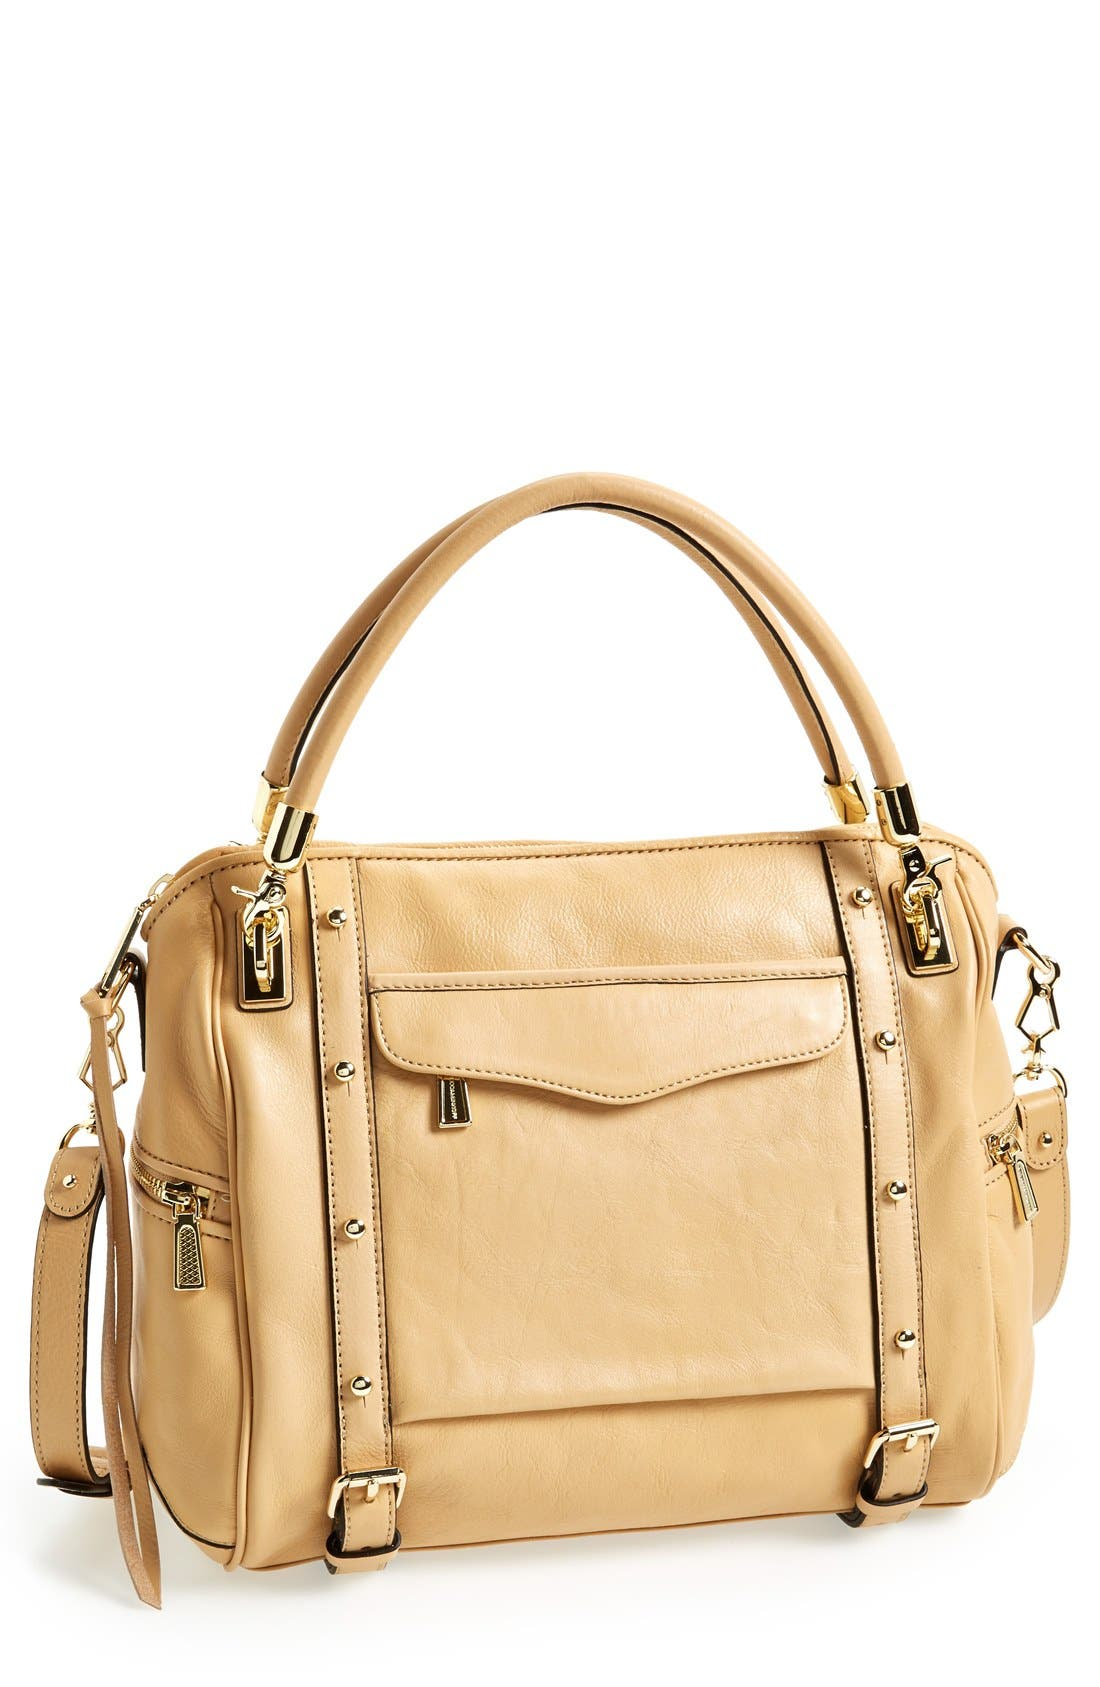 Alternate Image 1 Selected - Rebecca Minkoff 'Cupid' Satchel